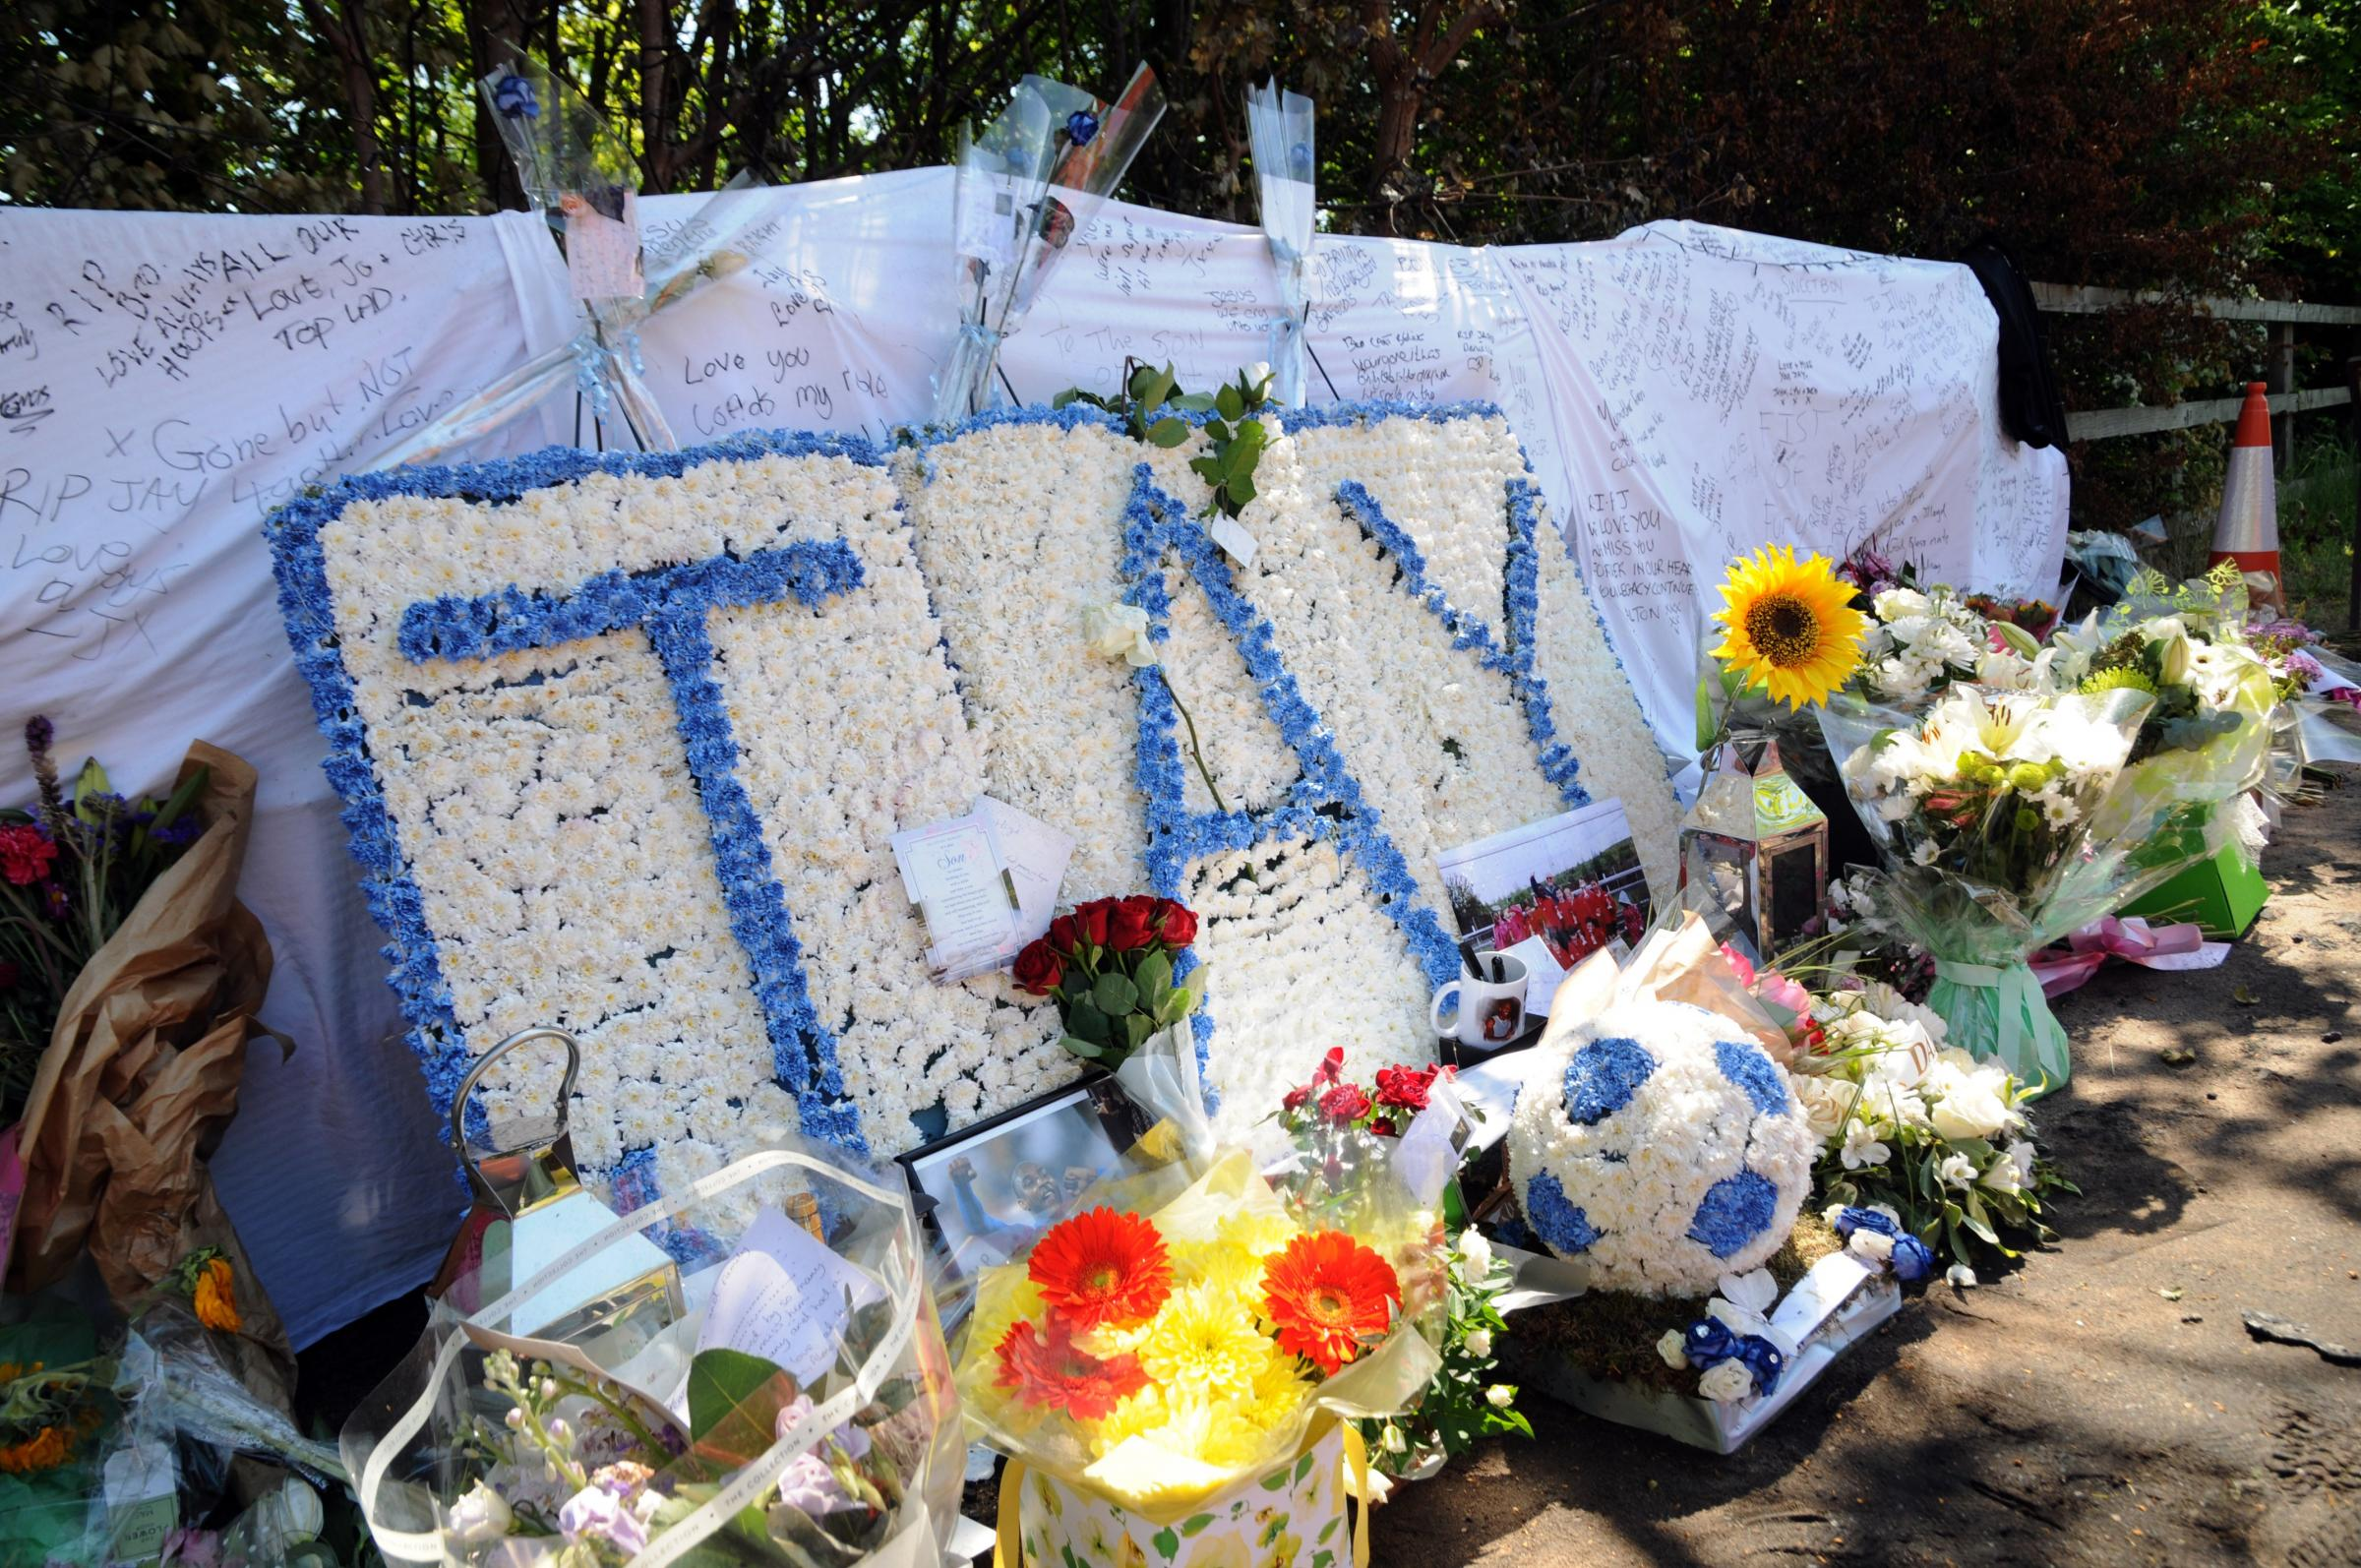 Floral tributes to Jlloyd Samuel at crash scene